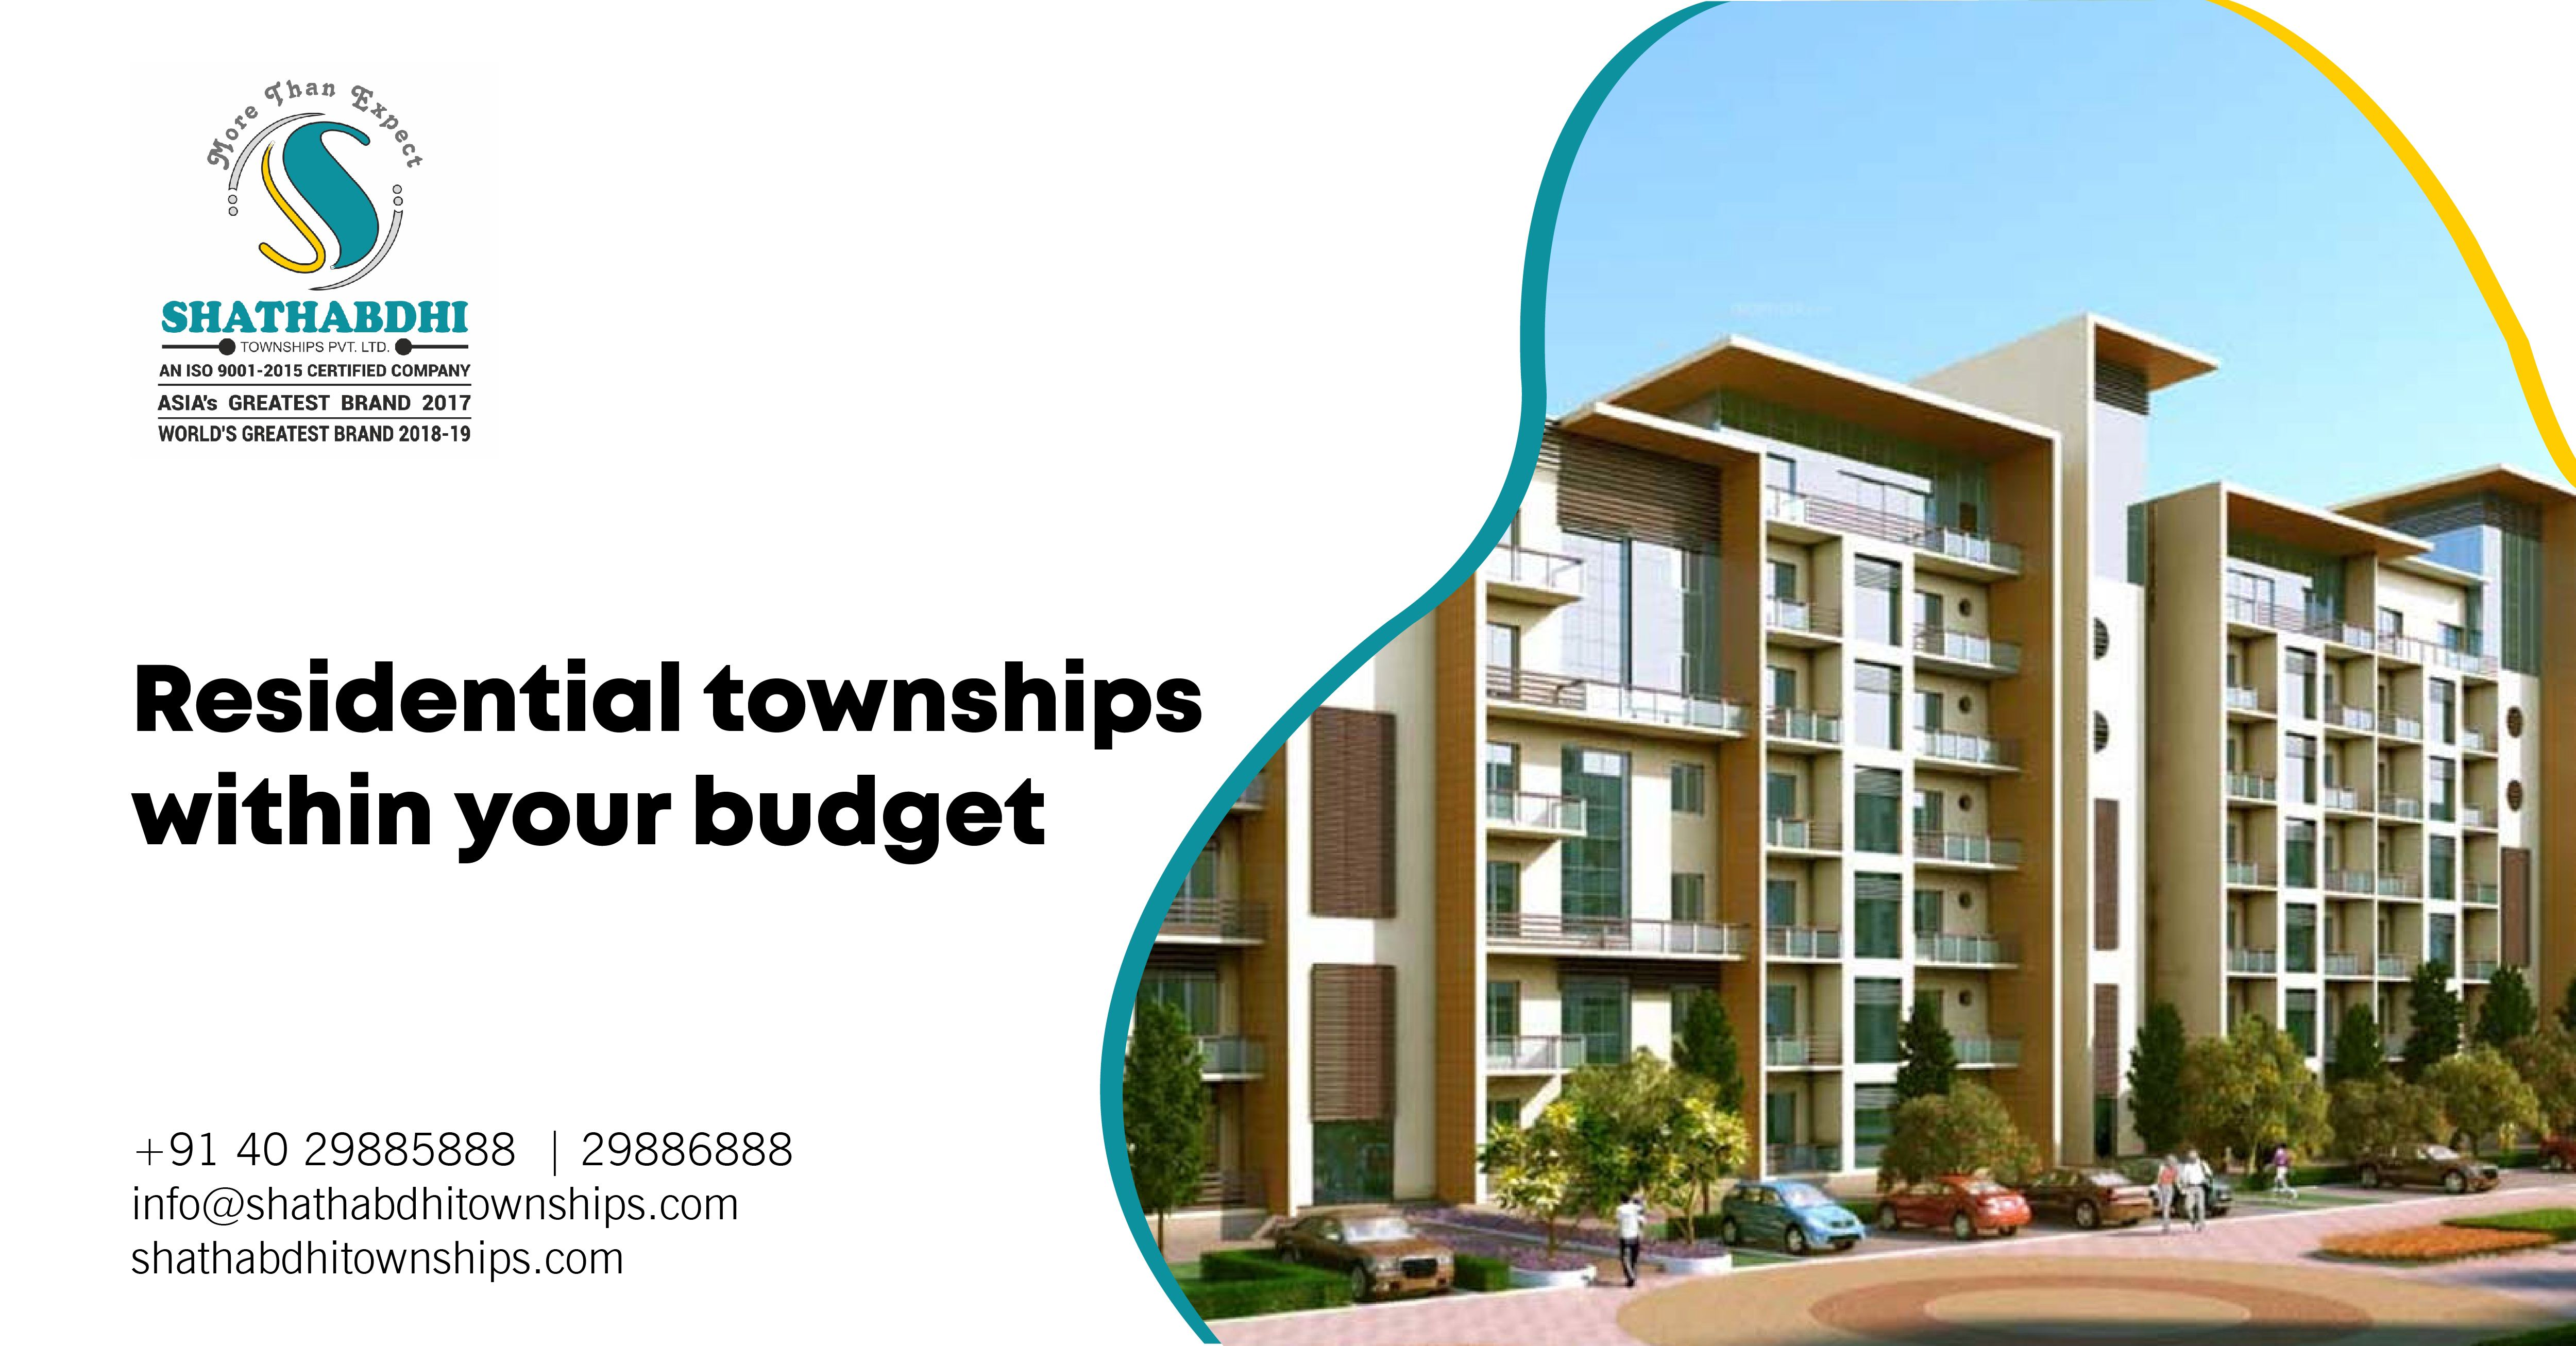 Best Real Estate Company In Hyderabad Shathabdhi Townships Pvt Ltd Top Real Estate Companies Real Estate Companies Plots For Sale